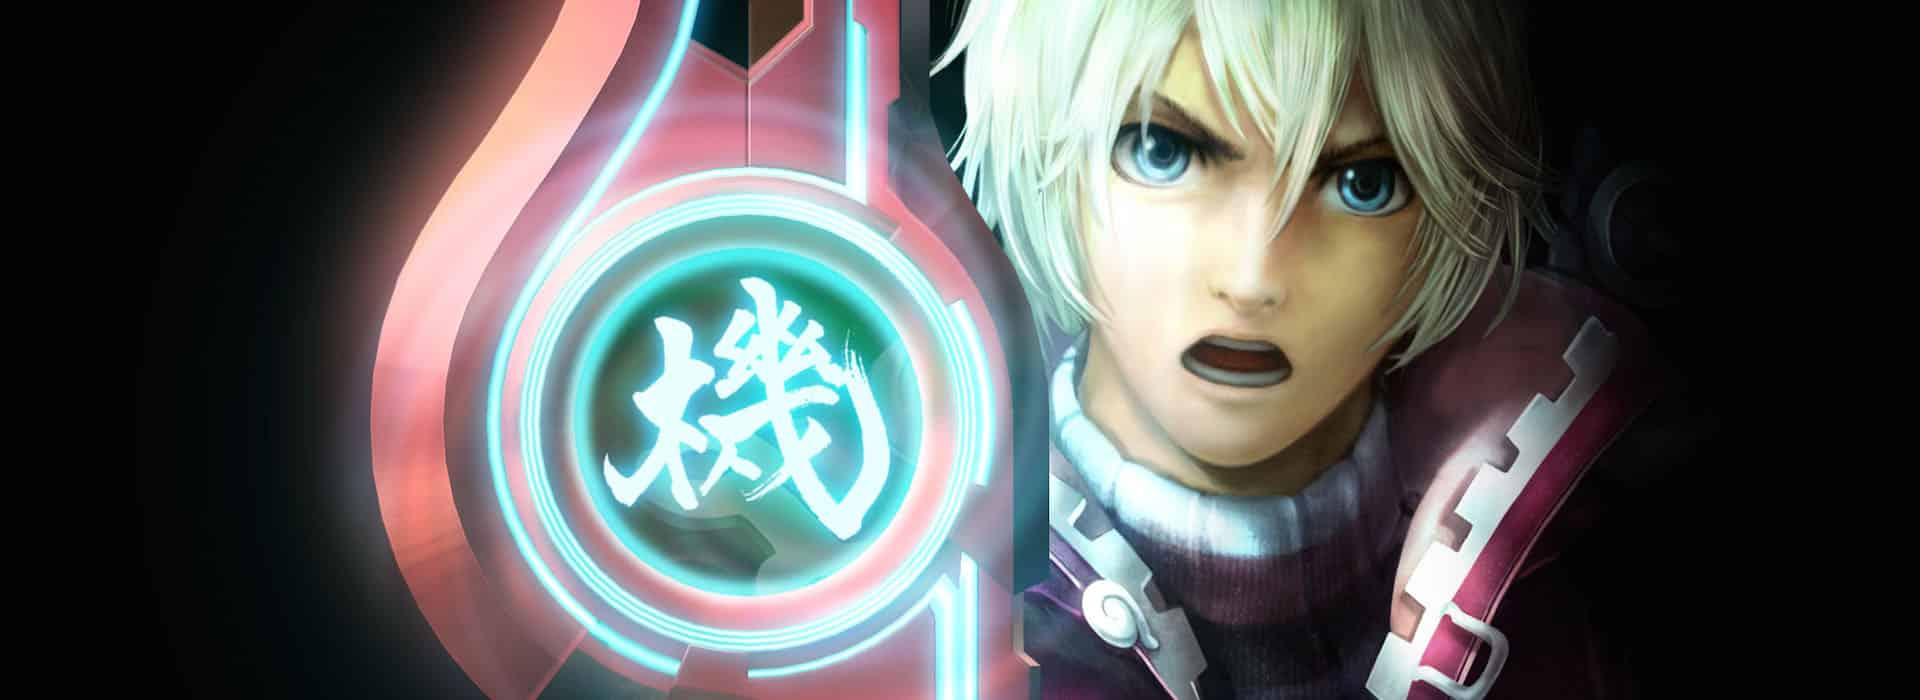 xenoblade-chronicles-3d-banner